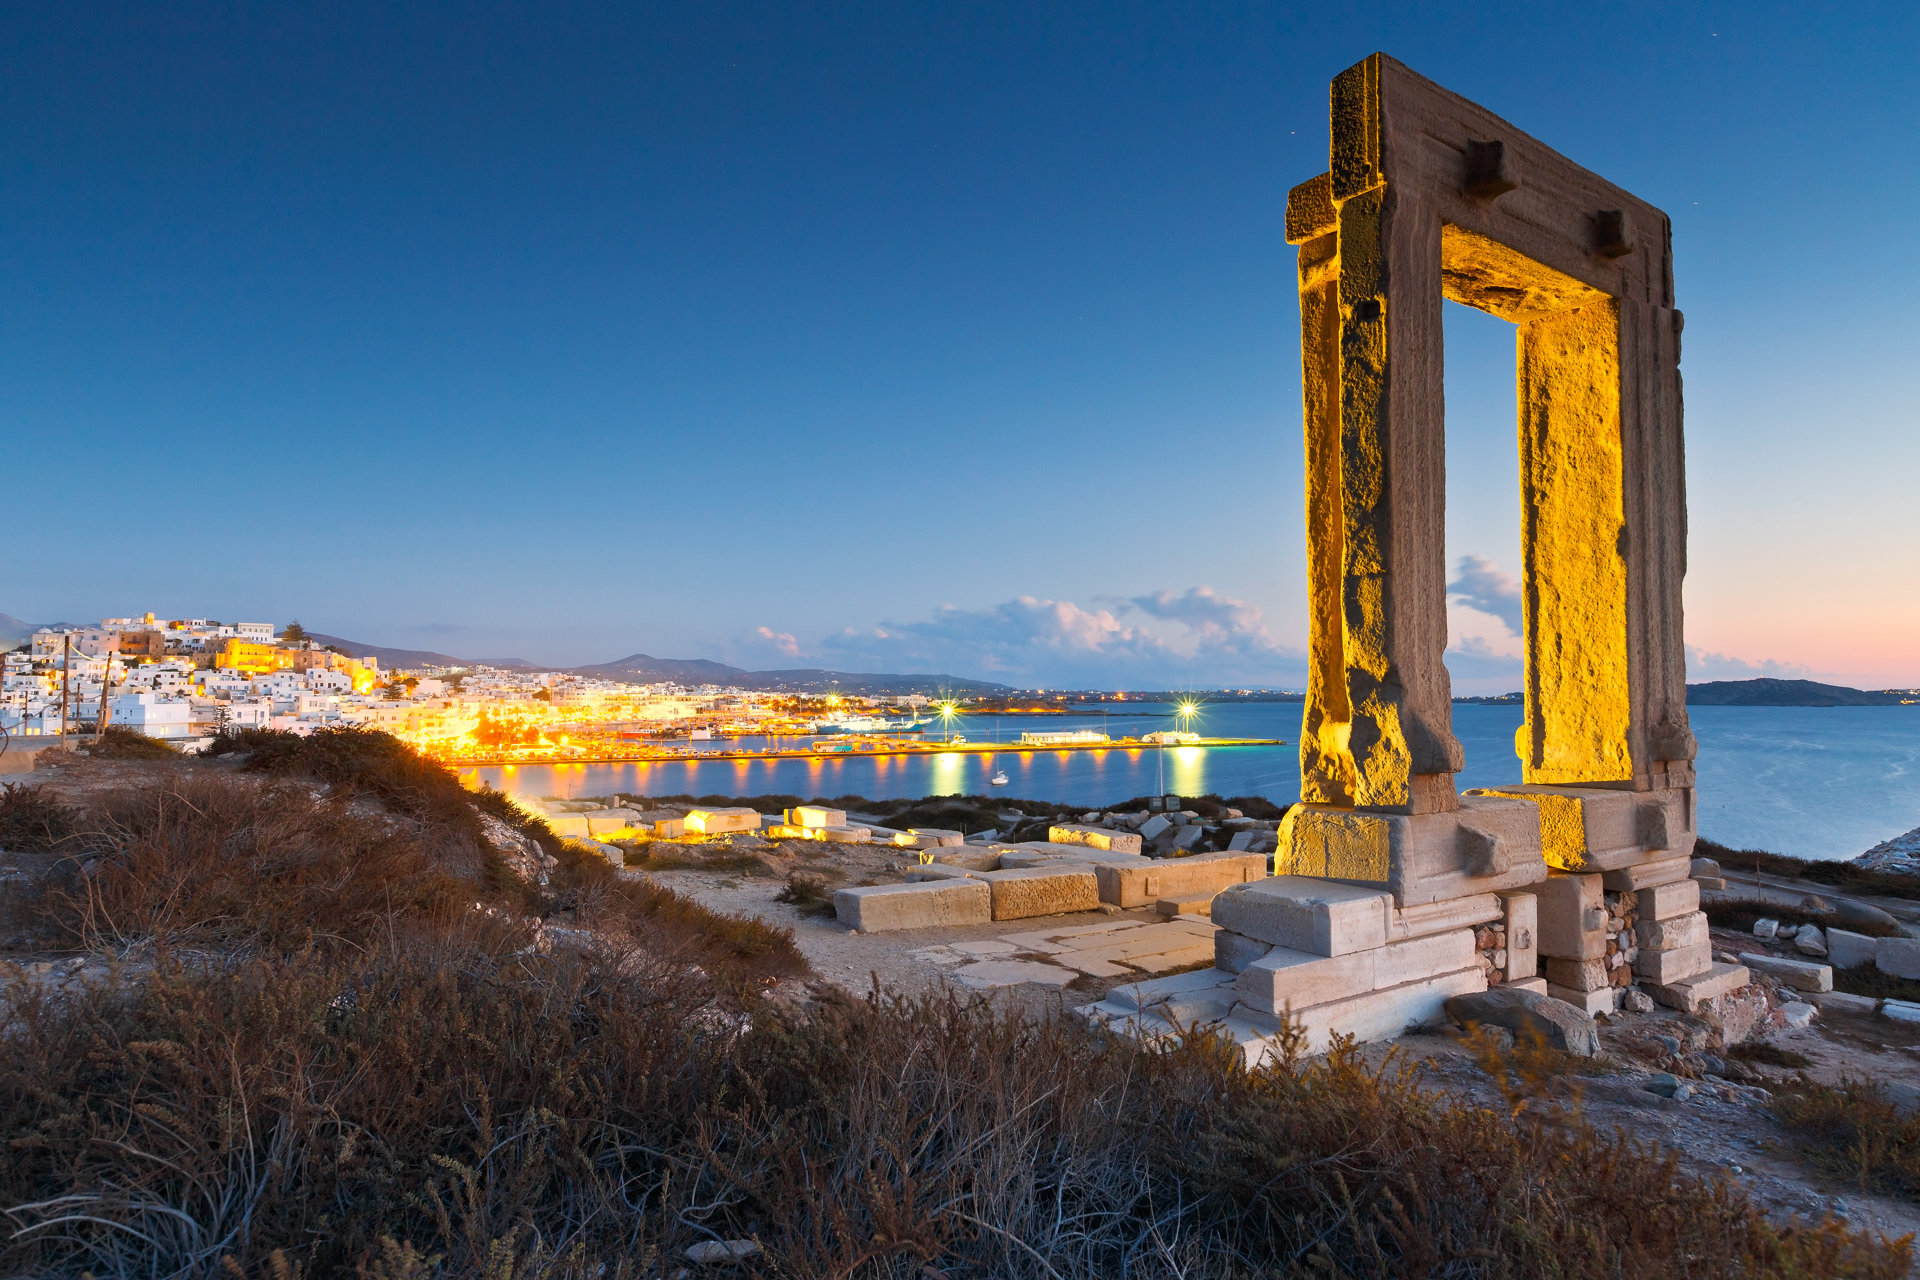 Naxos, Portara and remains of temple of Apollo at sunset